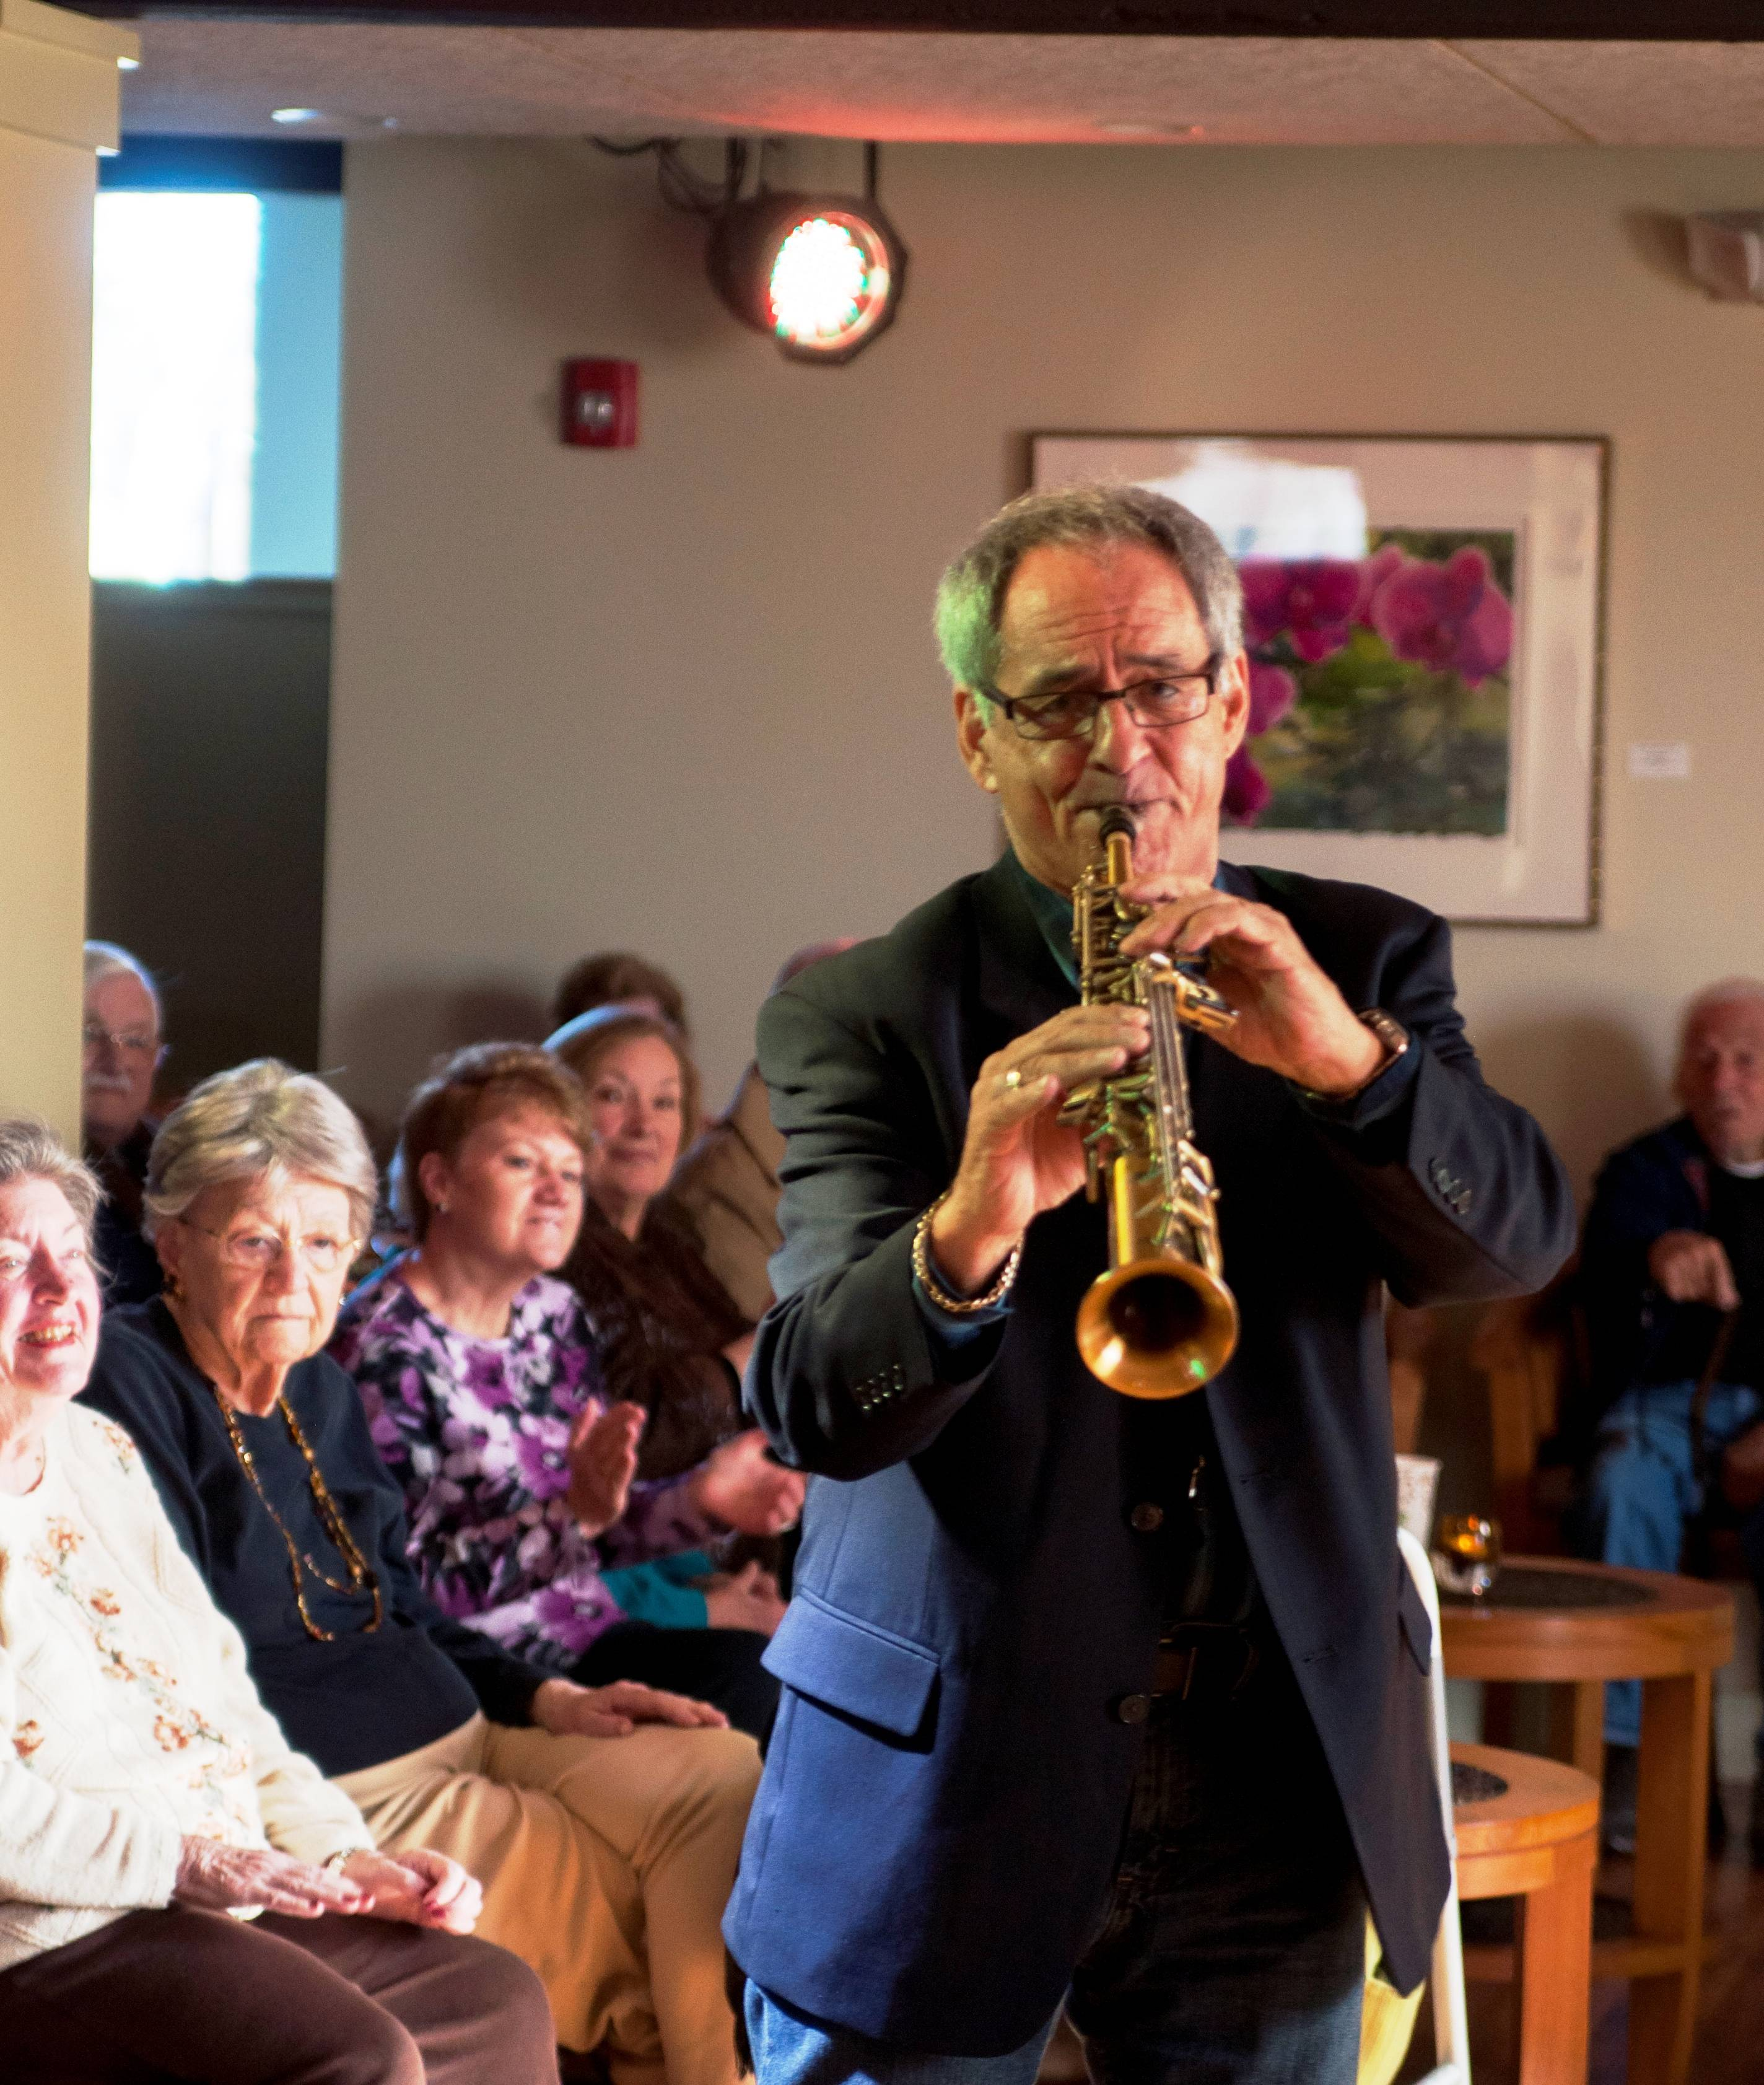 Phil Ciancio entertains Seniors on Nov. 13 at 'the Listening Room' at Lakeside Legacy Arts Park. Upcoming concert information can be viewed at www.LakesideLegacy.org.